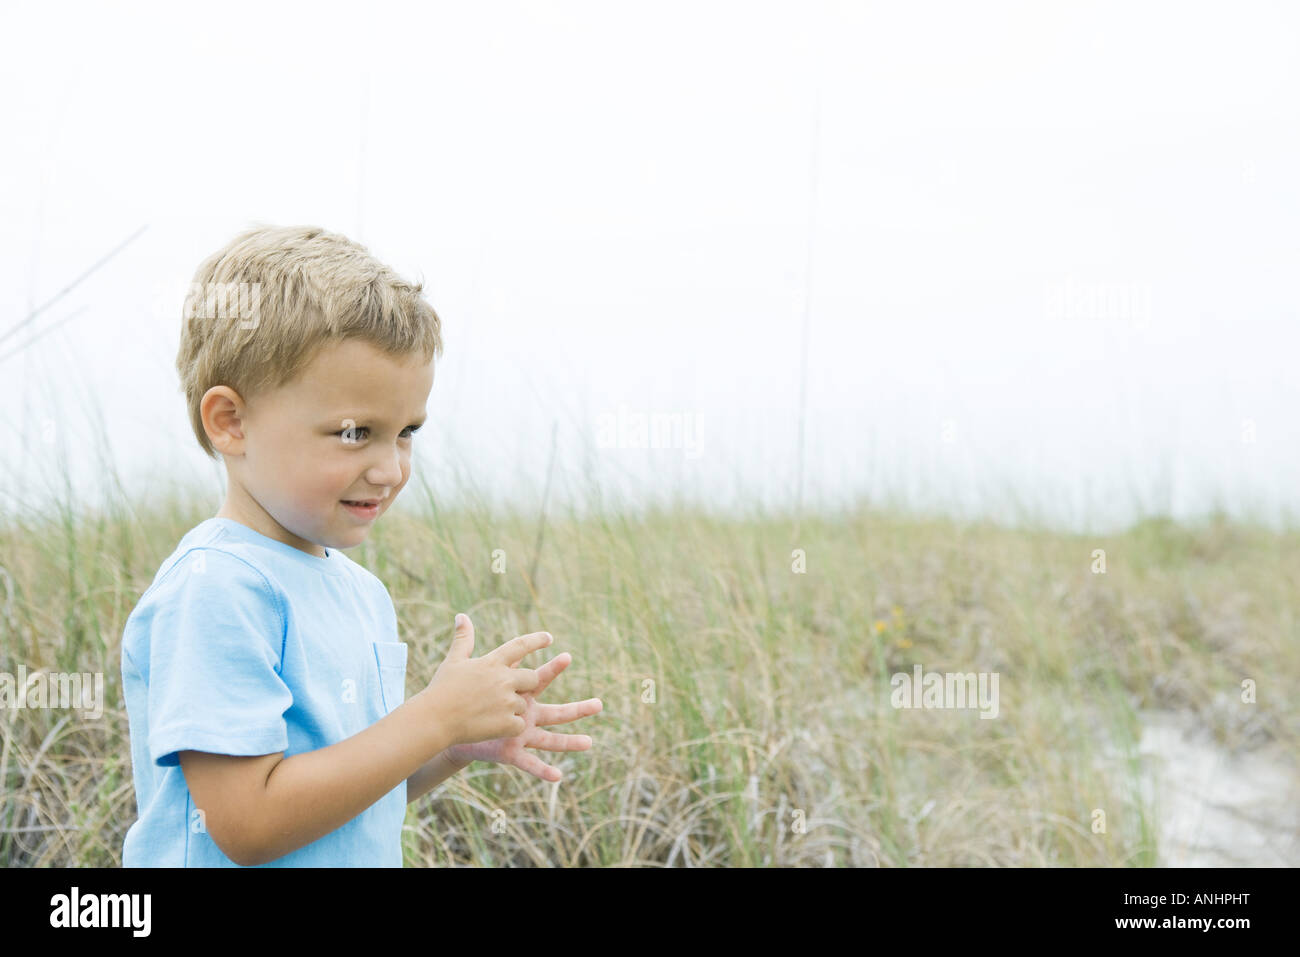 Young boy standing in tall grass, looking away, side view - Stock Image